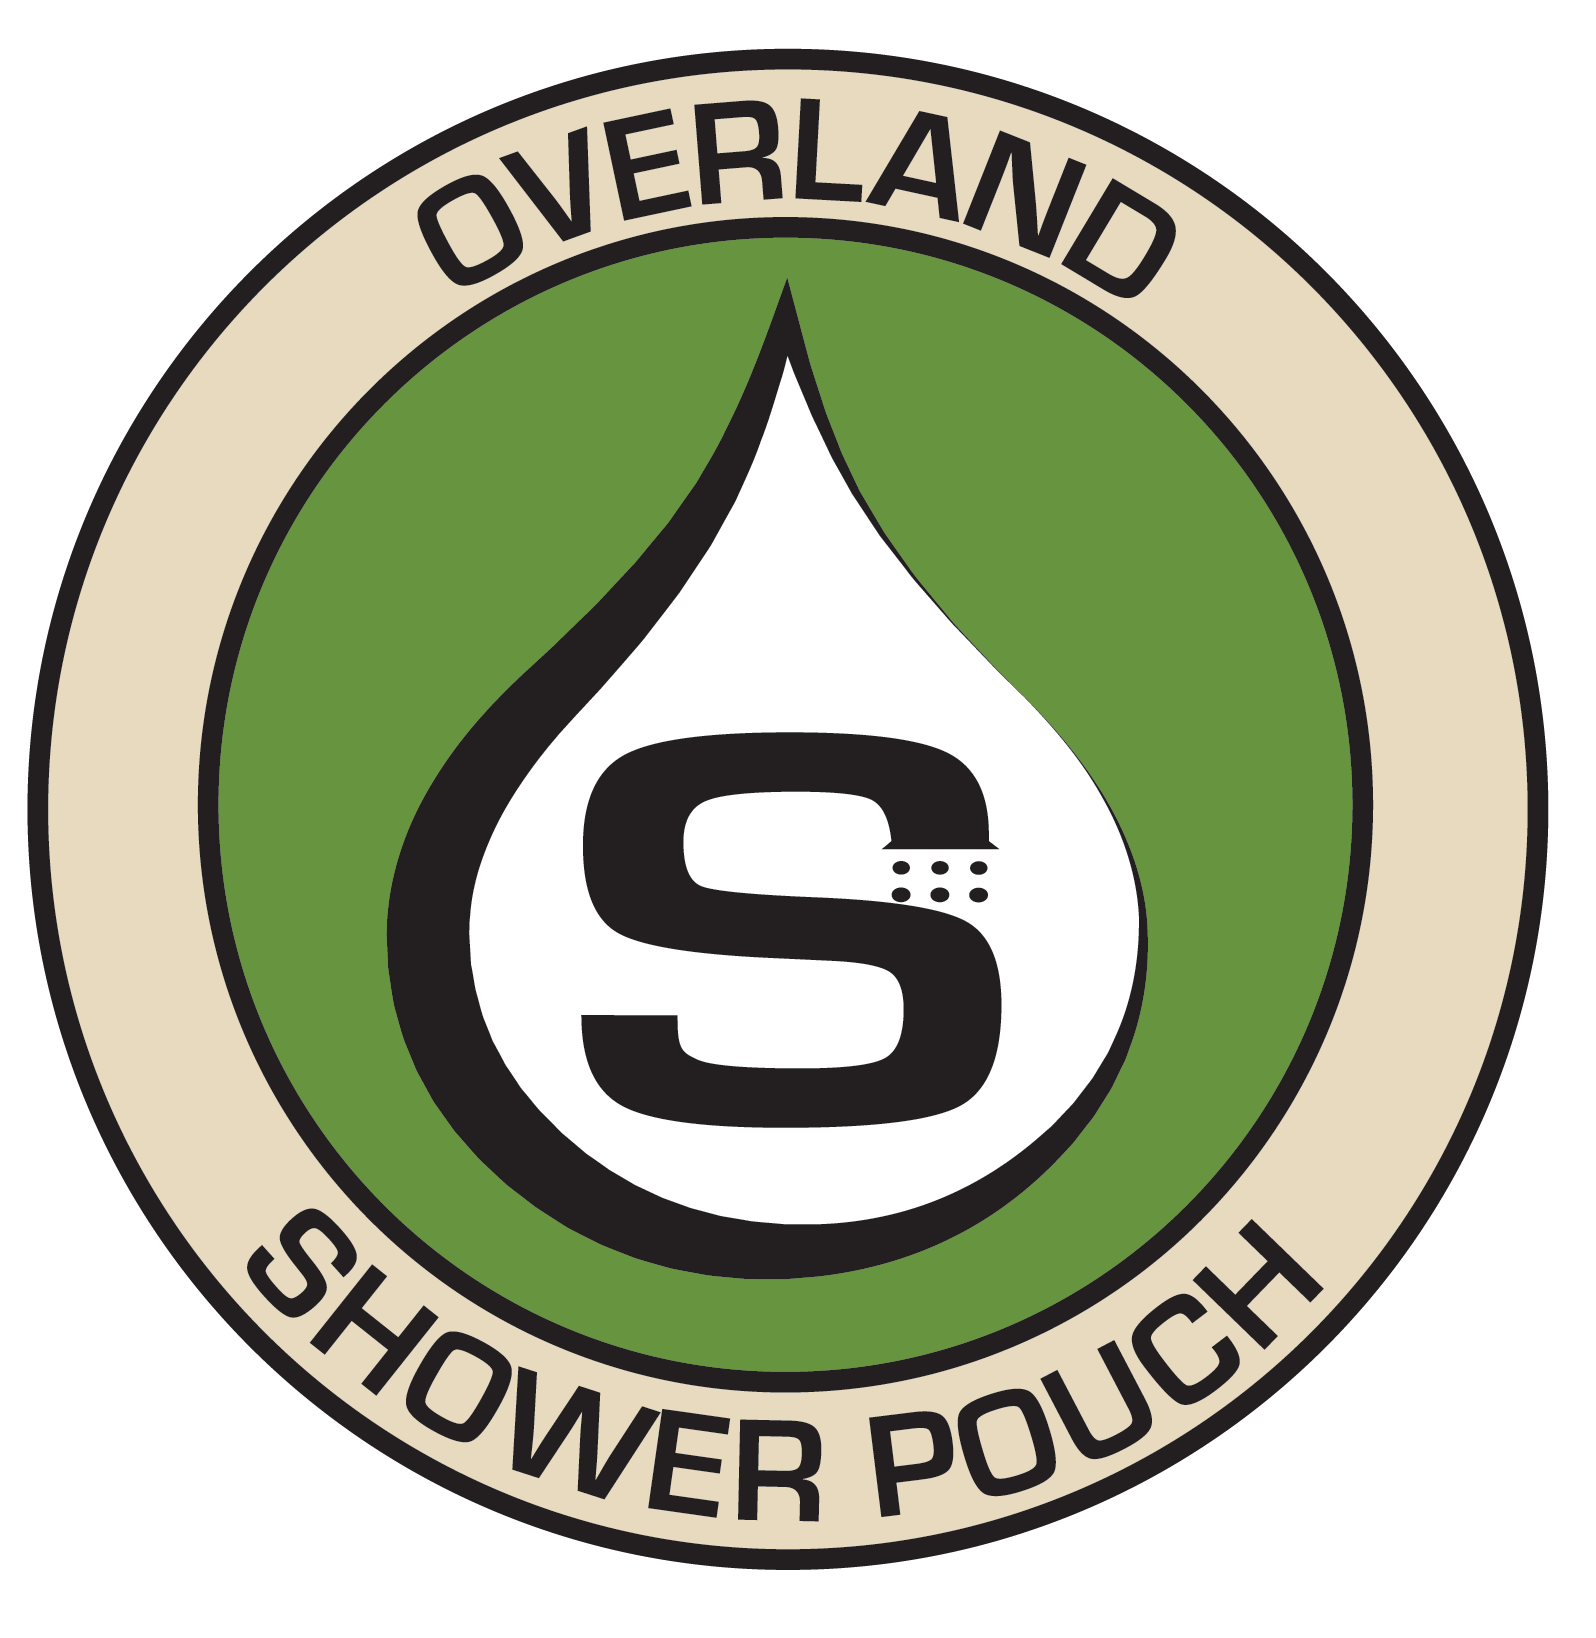 Overland Shower Pouch